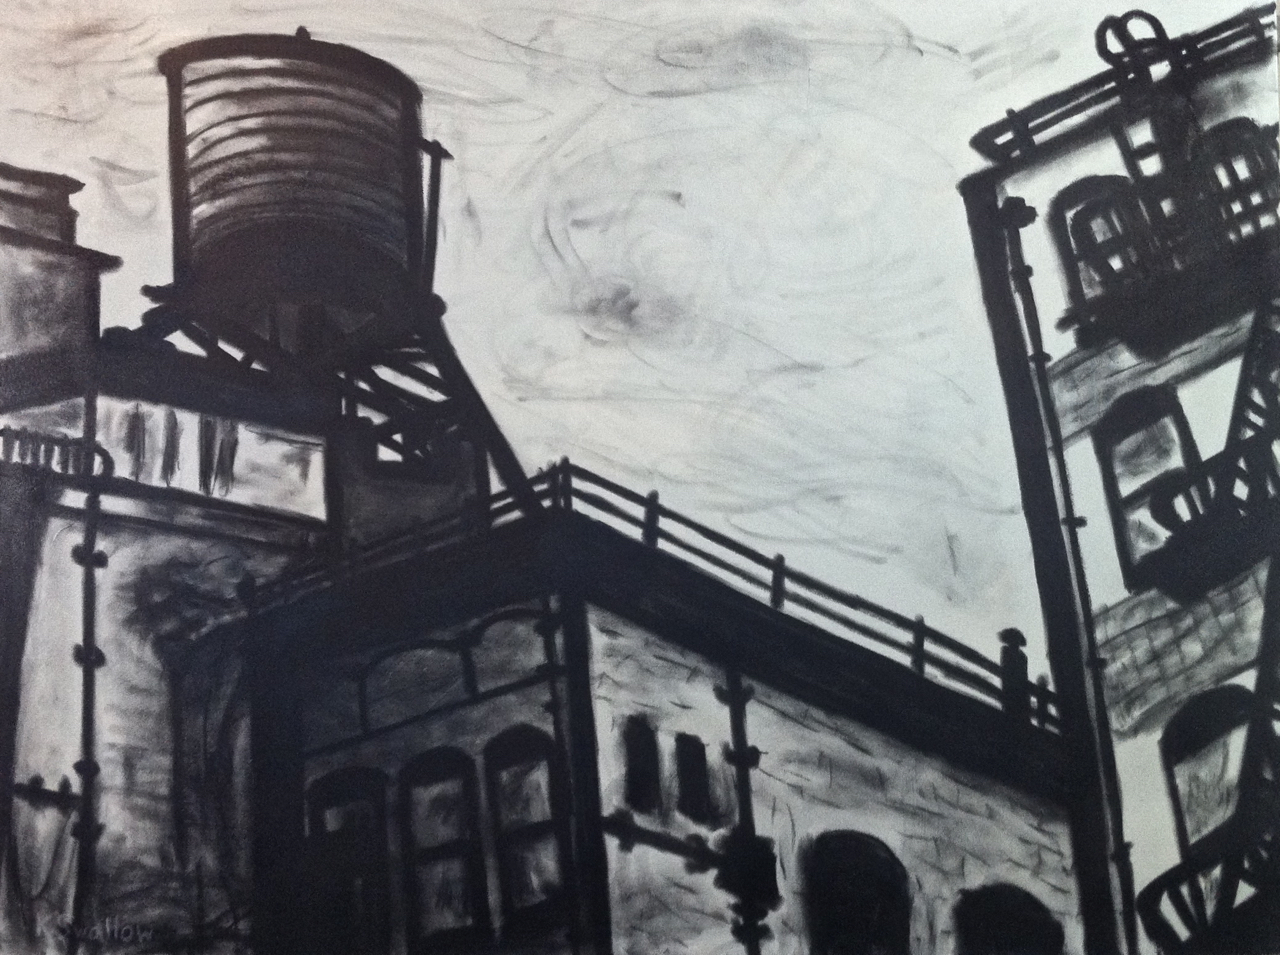 Spring St. SoHo (NYC), charcoal and acrylic on canvas, 36x48, 2012, SOLD